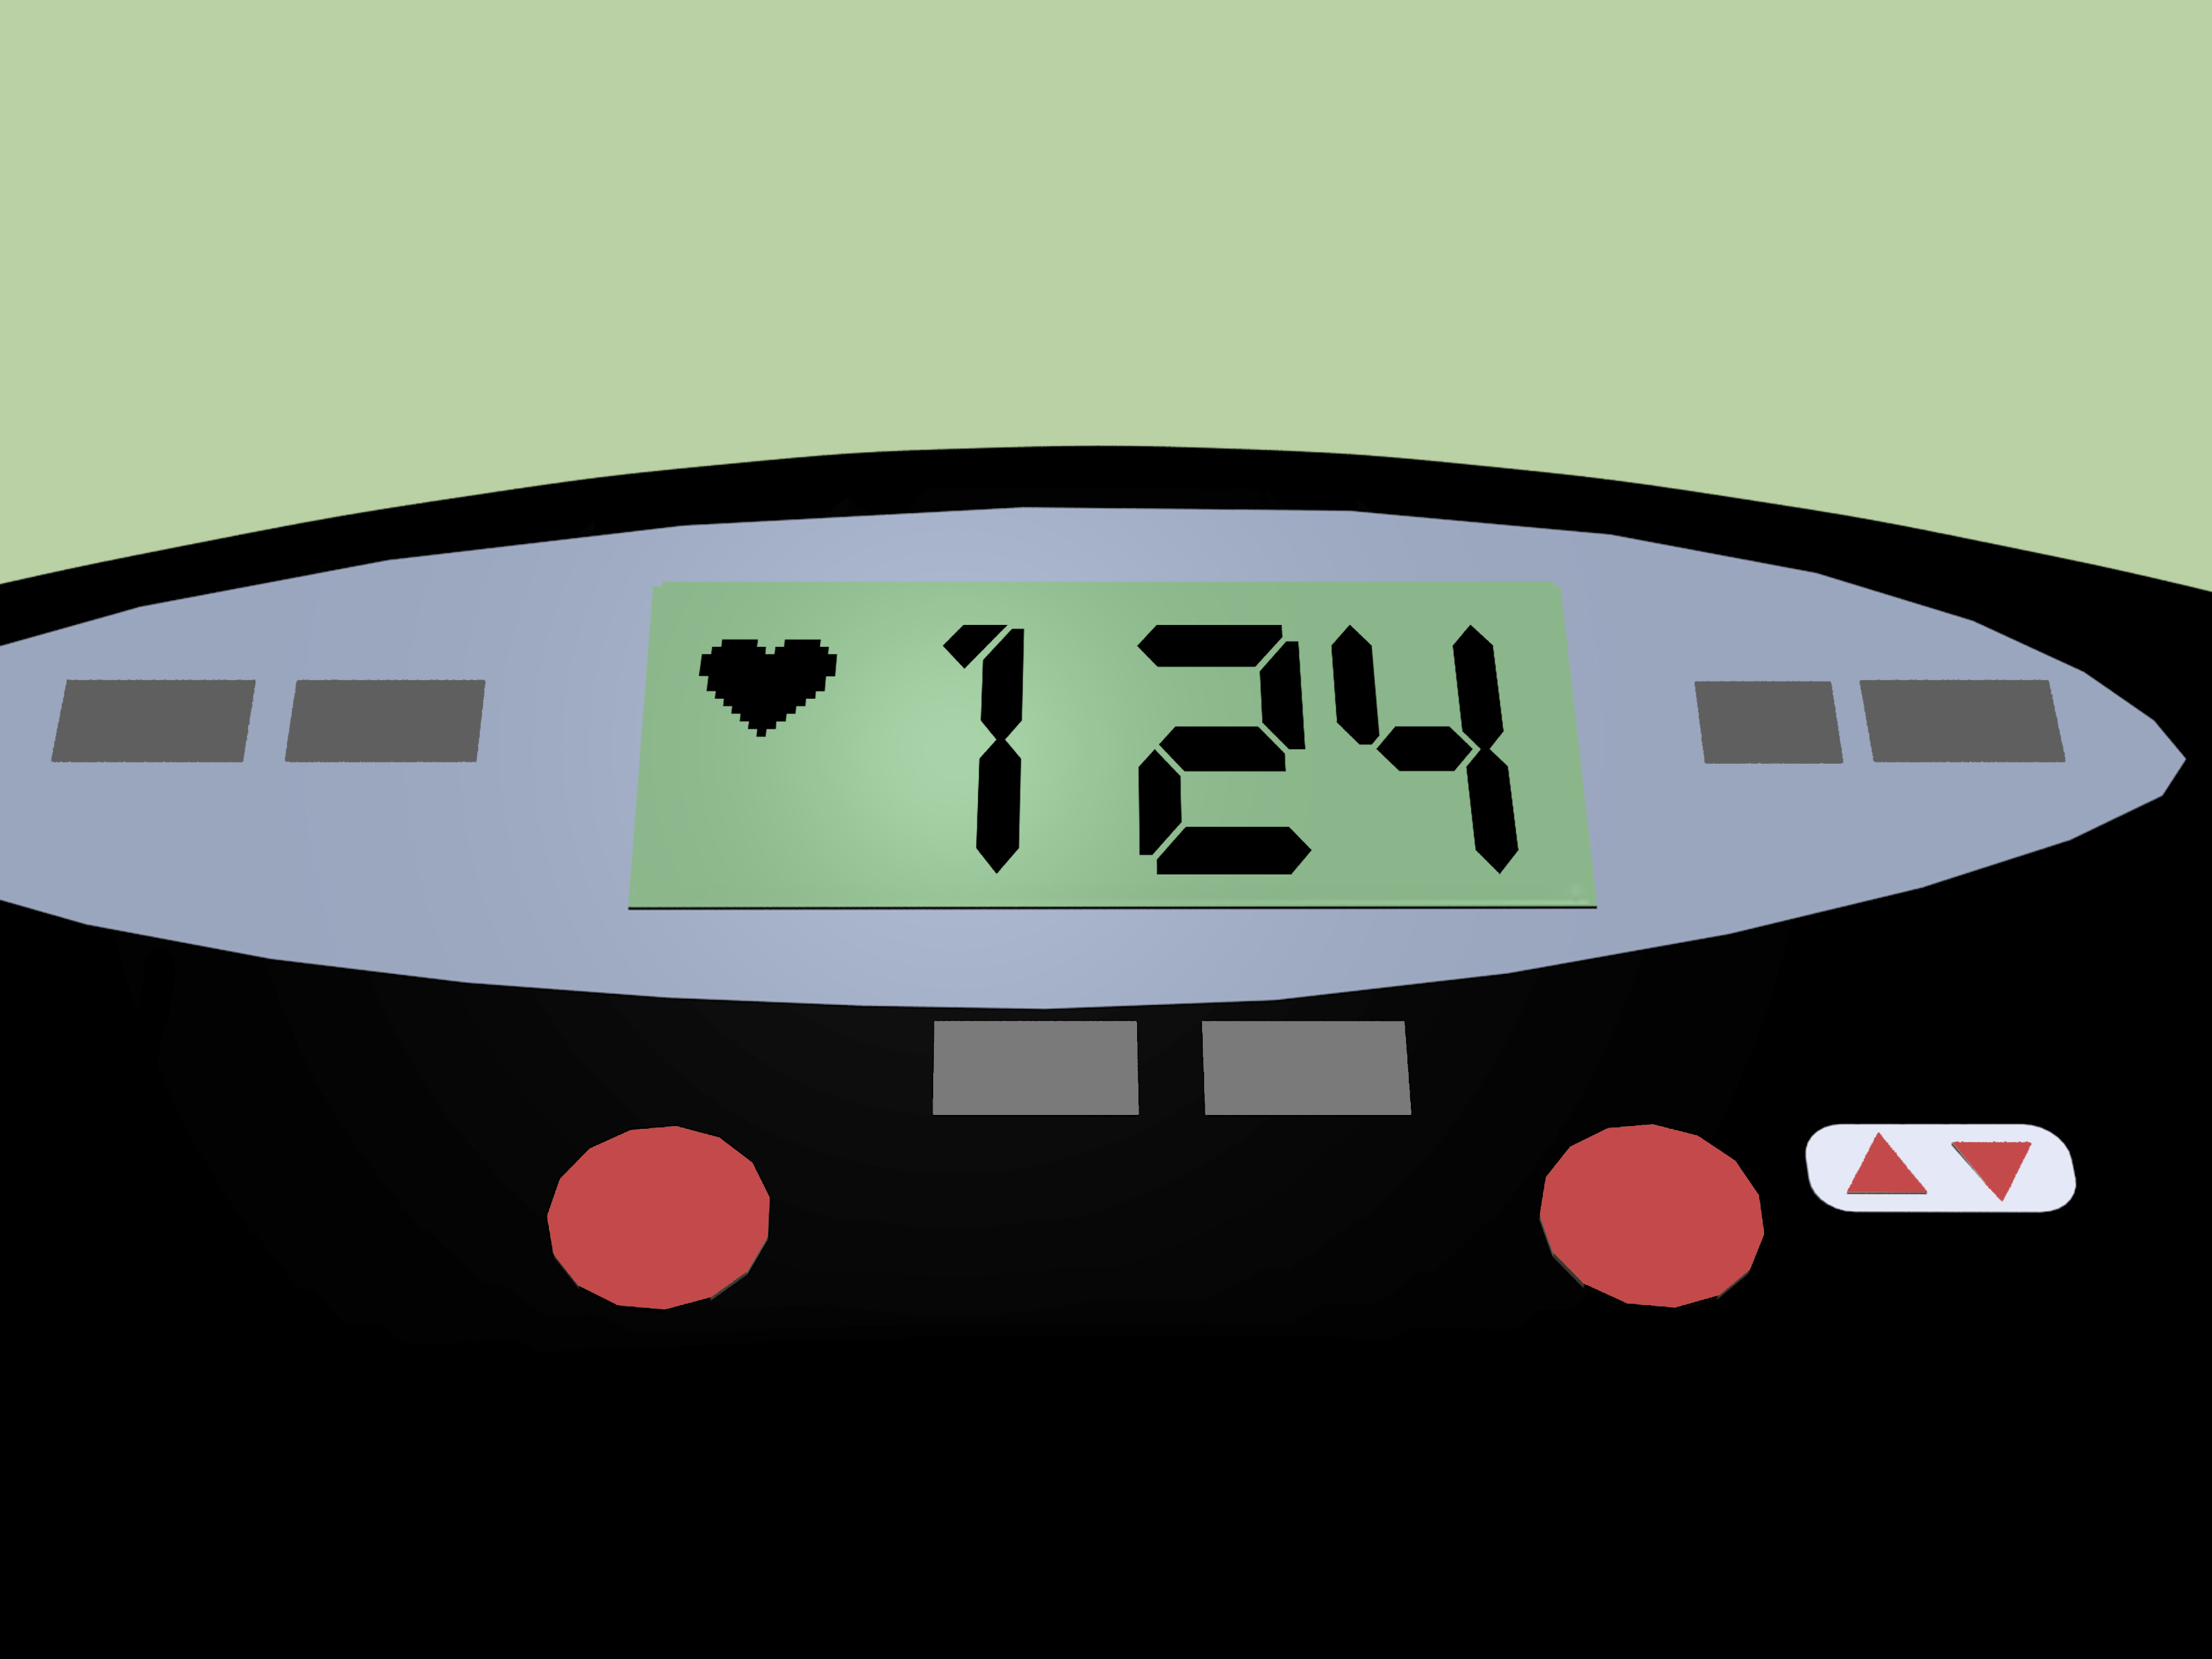 How To Calculate Your Heart Rate With Calculator